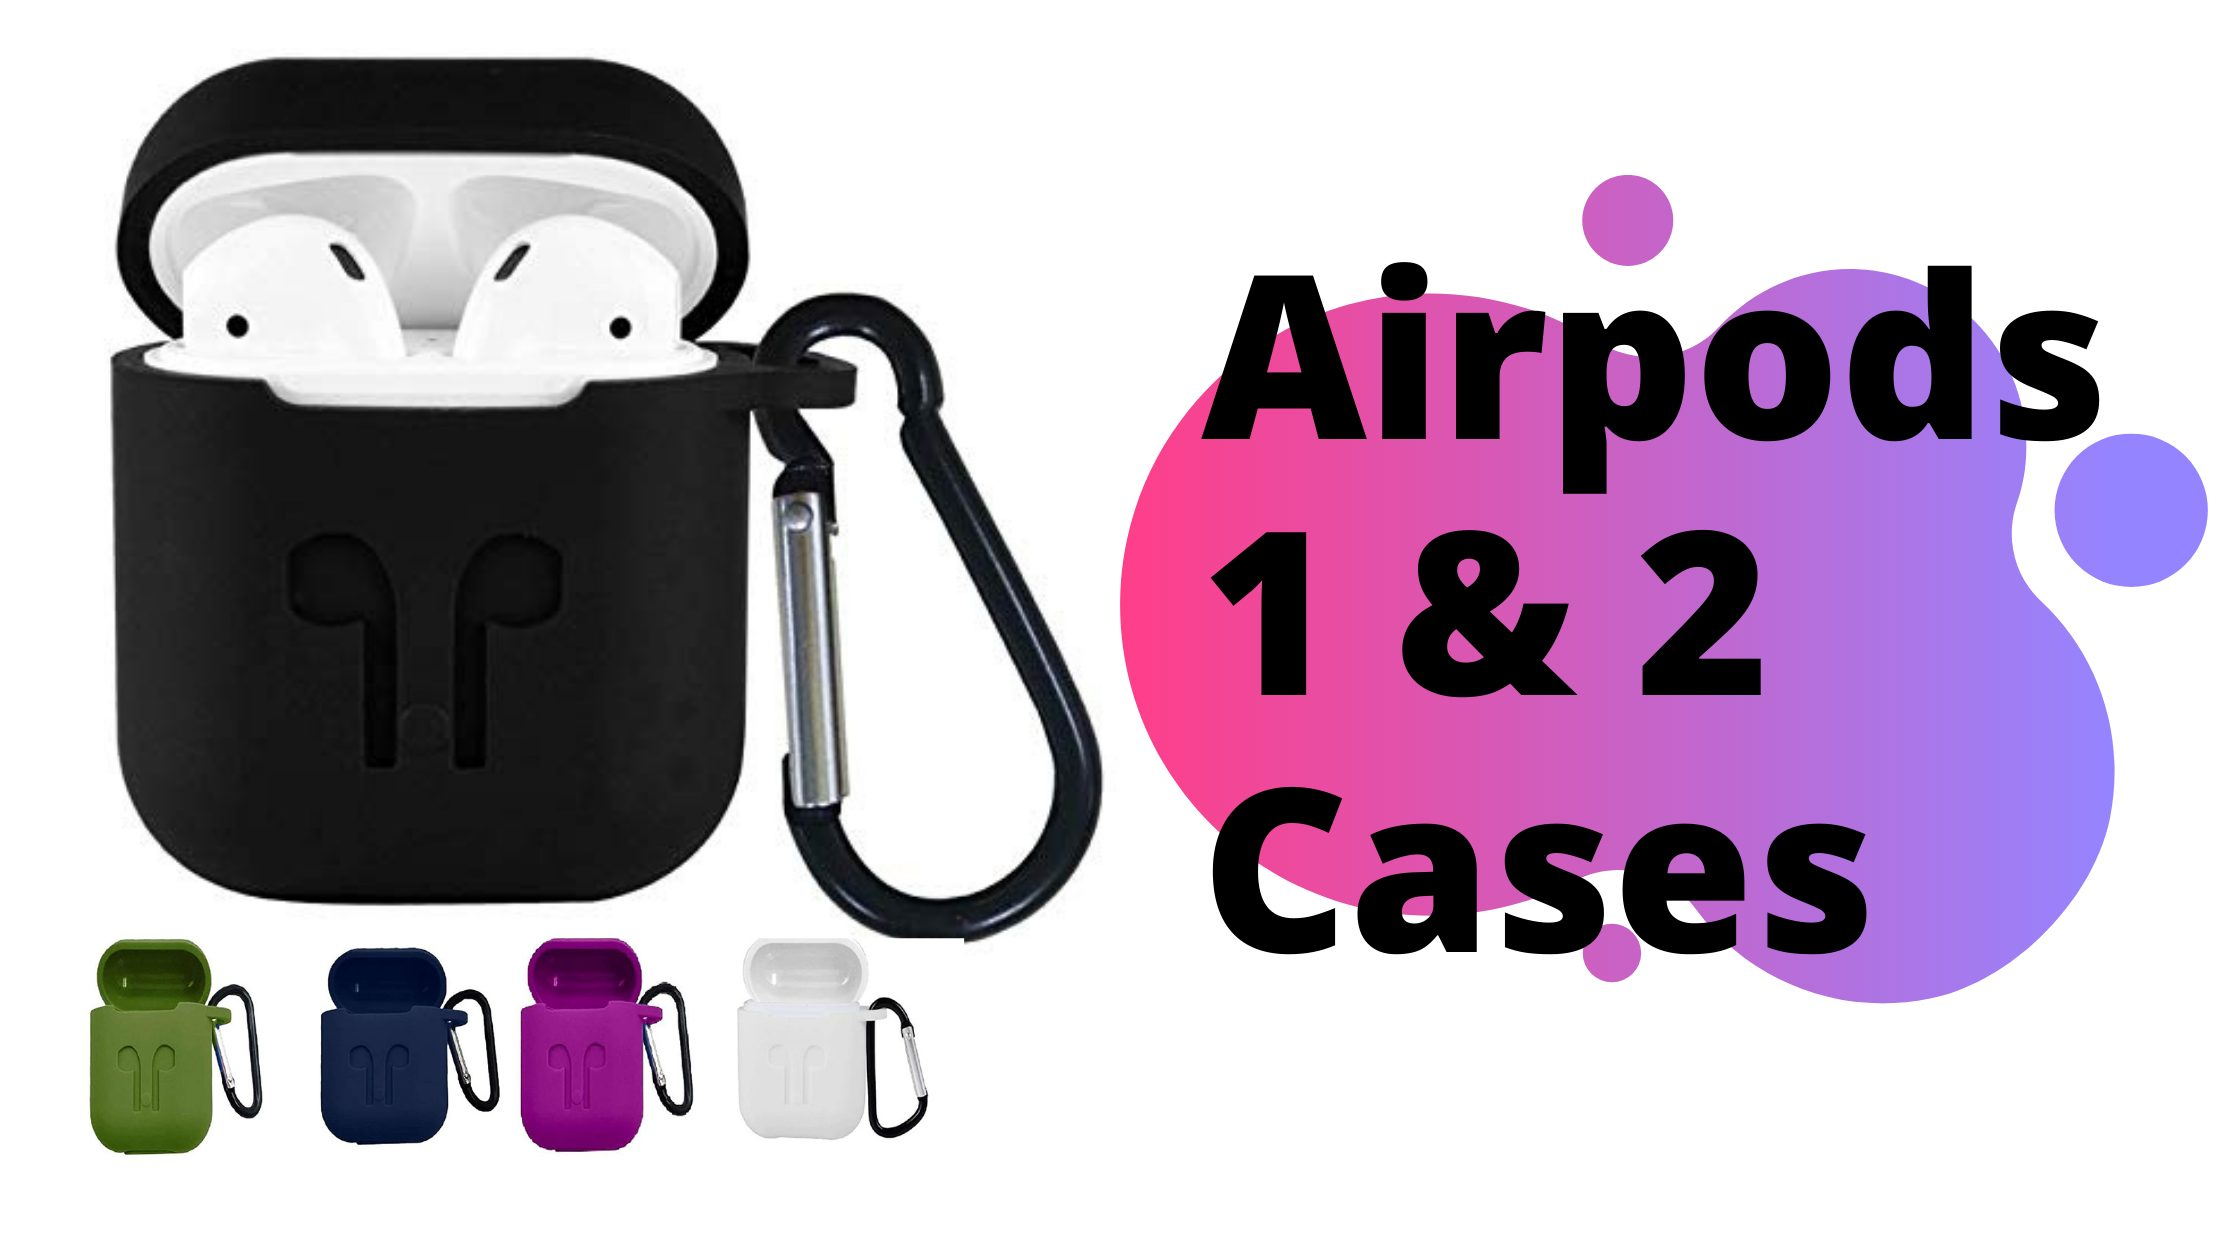 Airpods 1 & 2 Cases